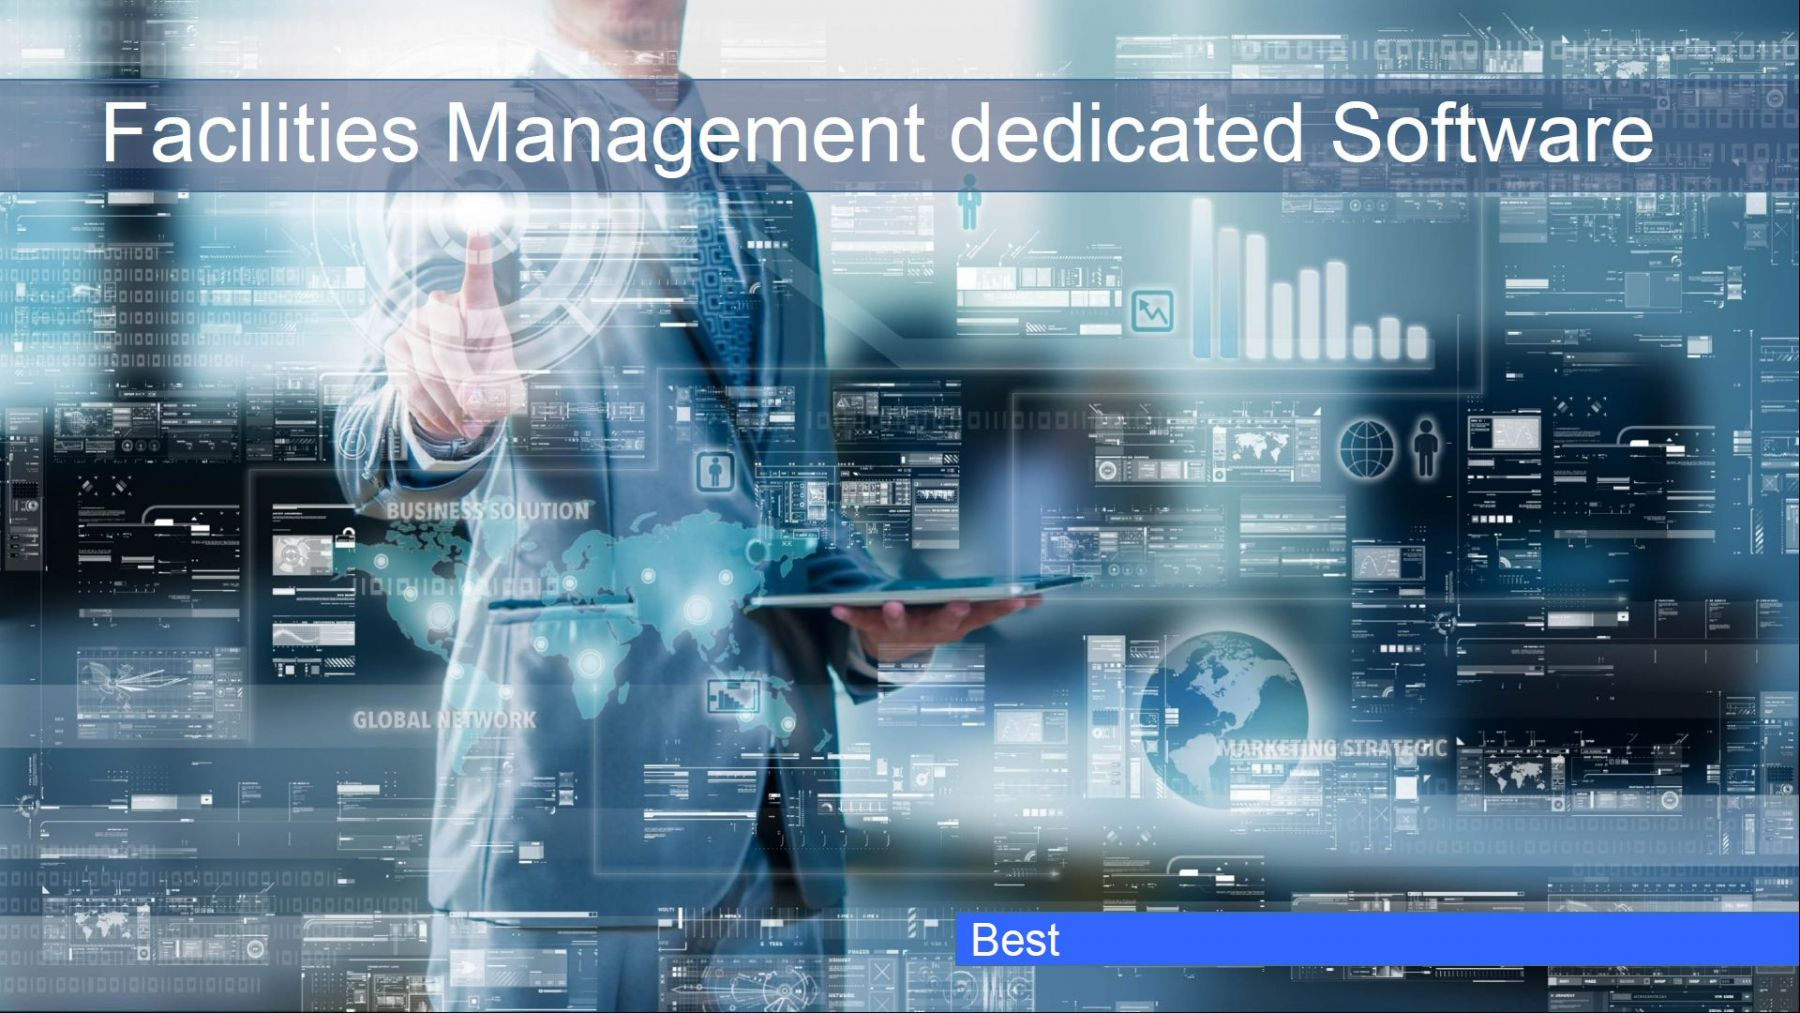 Facility Management dedicated Software